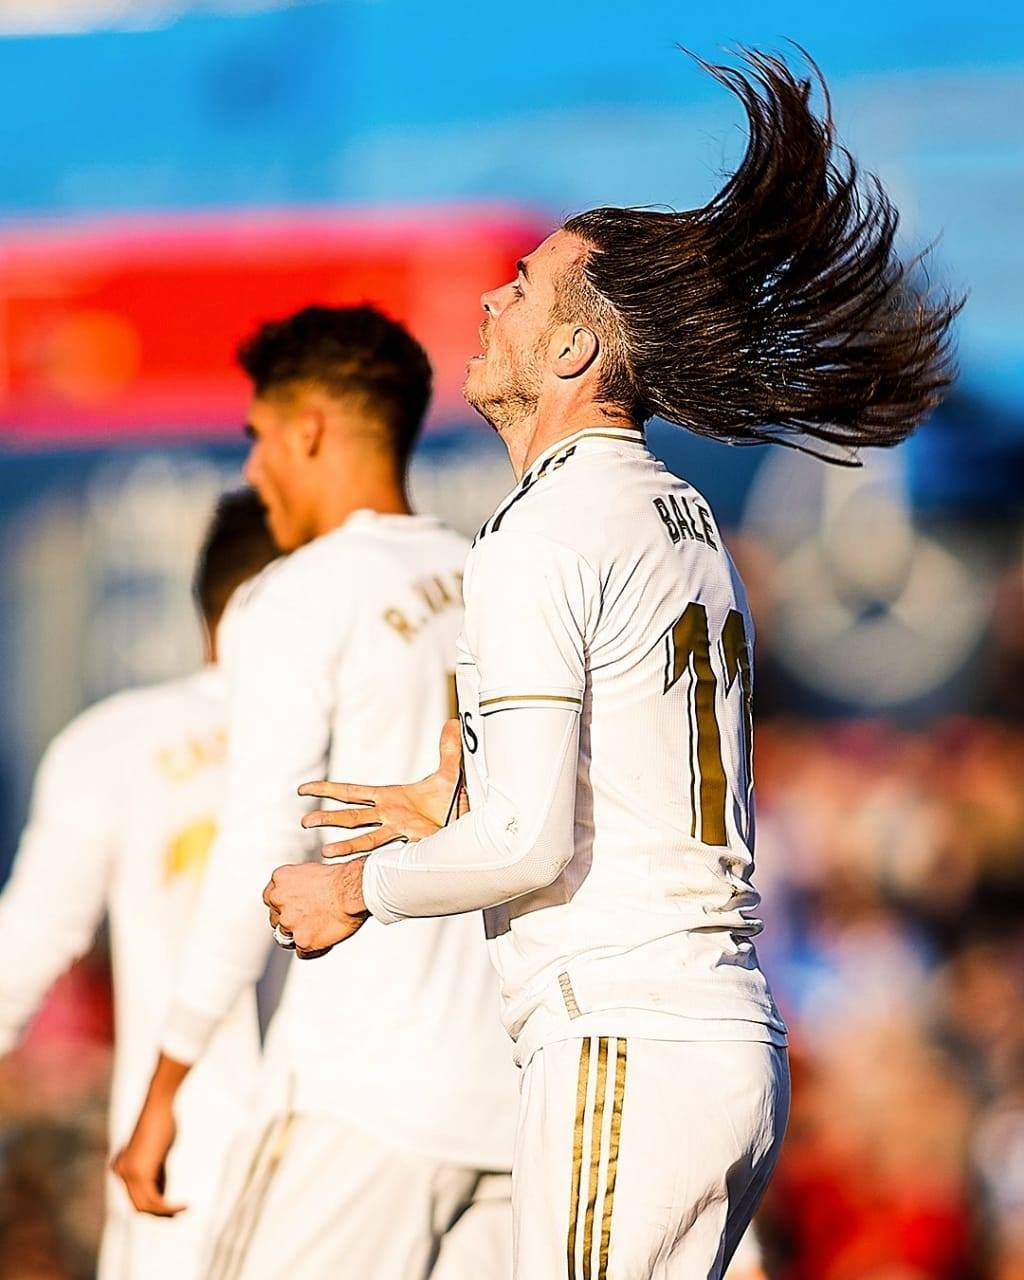 New Head Amp Shoulders Commercial In 2020 Gareth Bale Messi And Ronaldo Lucas Vazquez